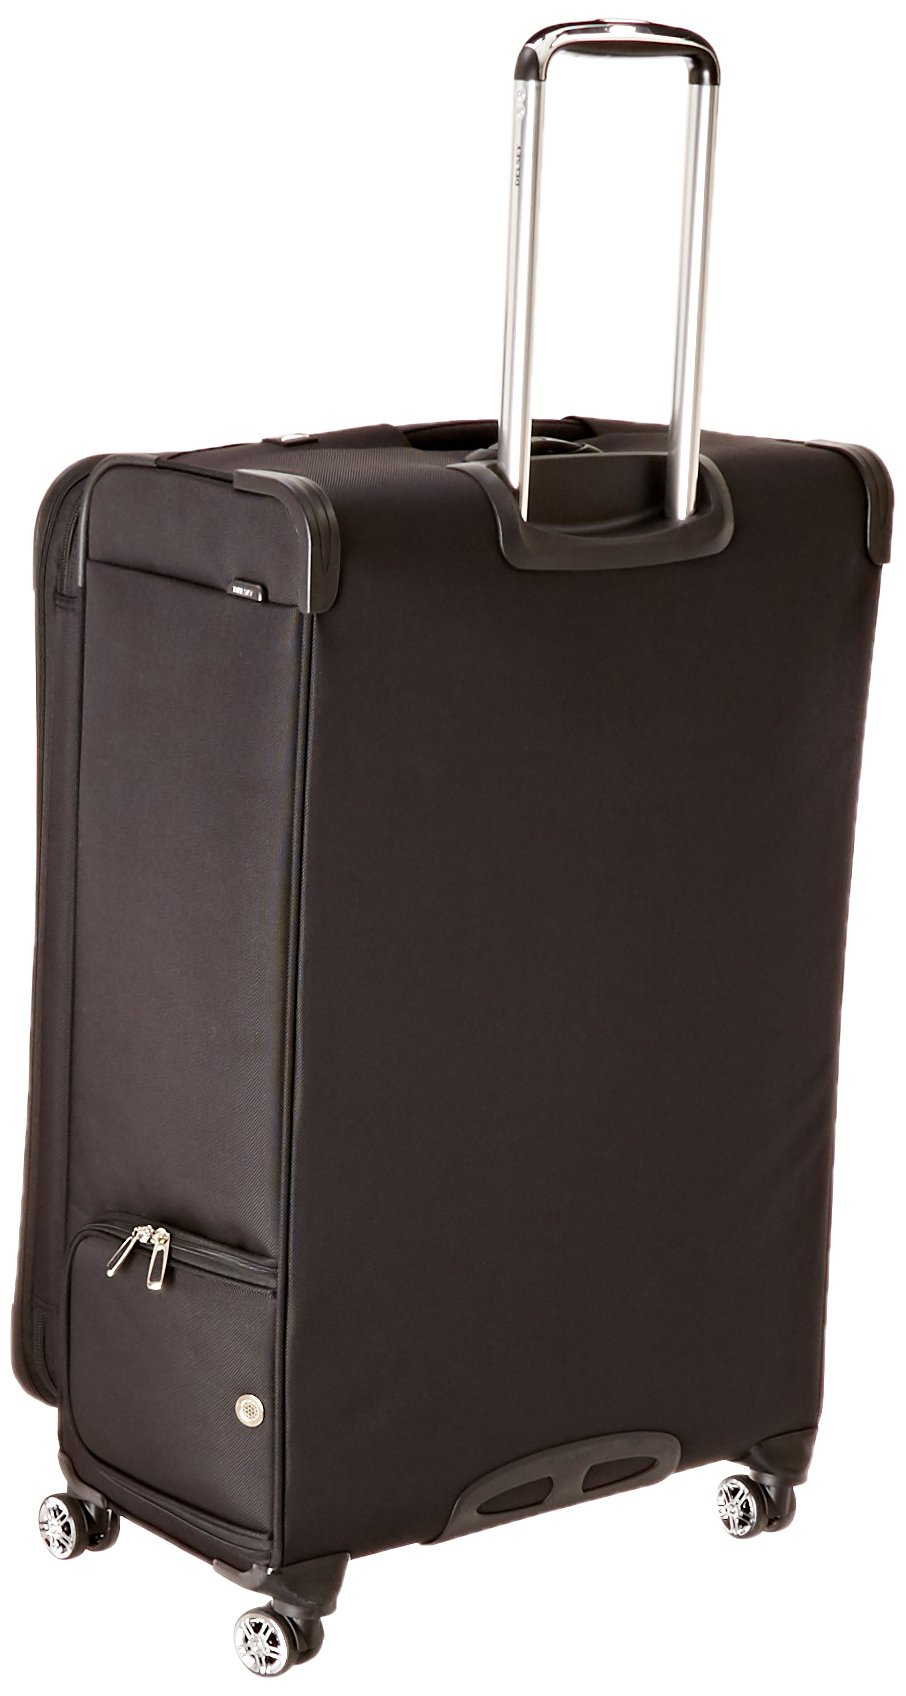 Black DELSEY Paris Helium Pilot 3.0 Carry-on Exp Spinner Trolley